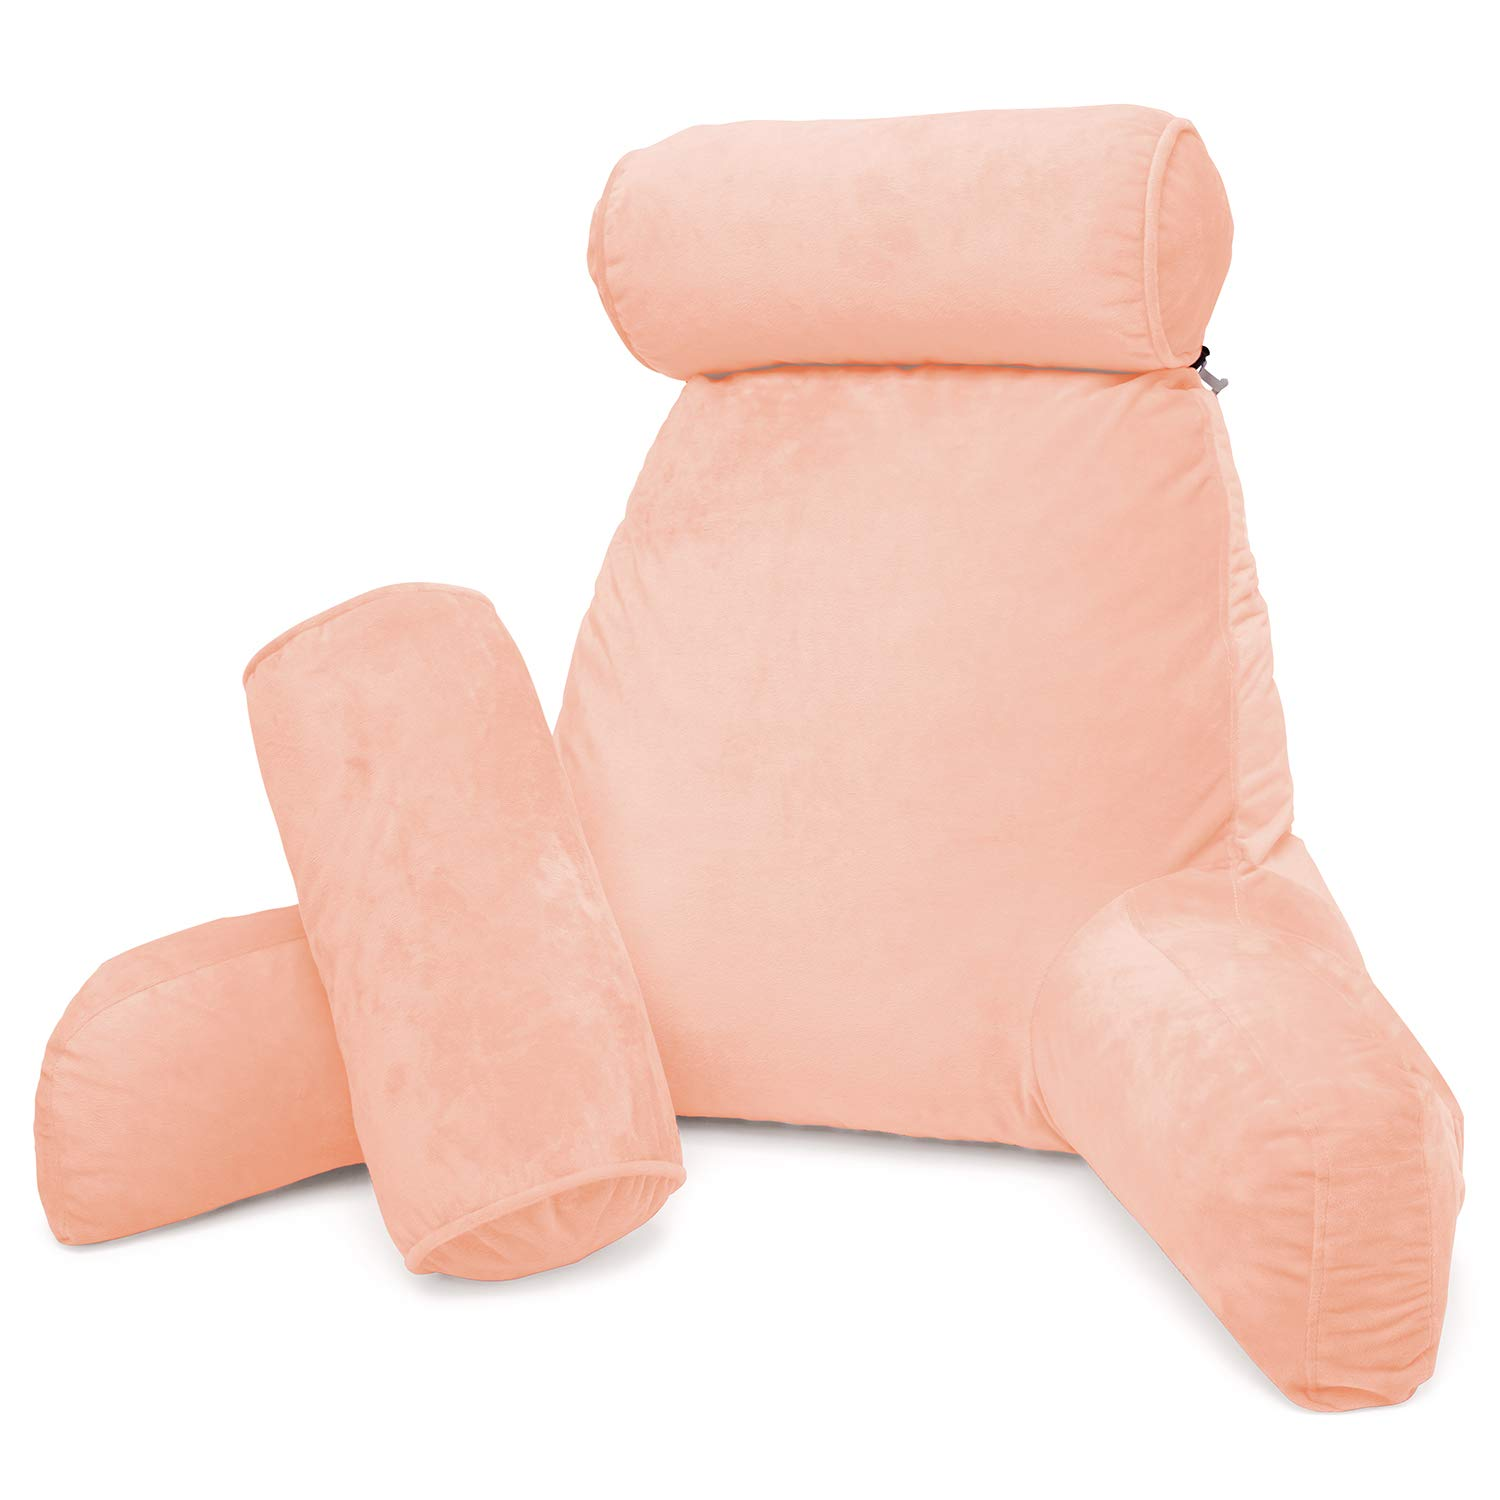 clara clark bed rest reading pillow with arms and pockets premium shredded memory foam tv pillow detachable neck roll lumbar support pillow